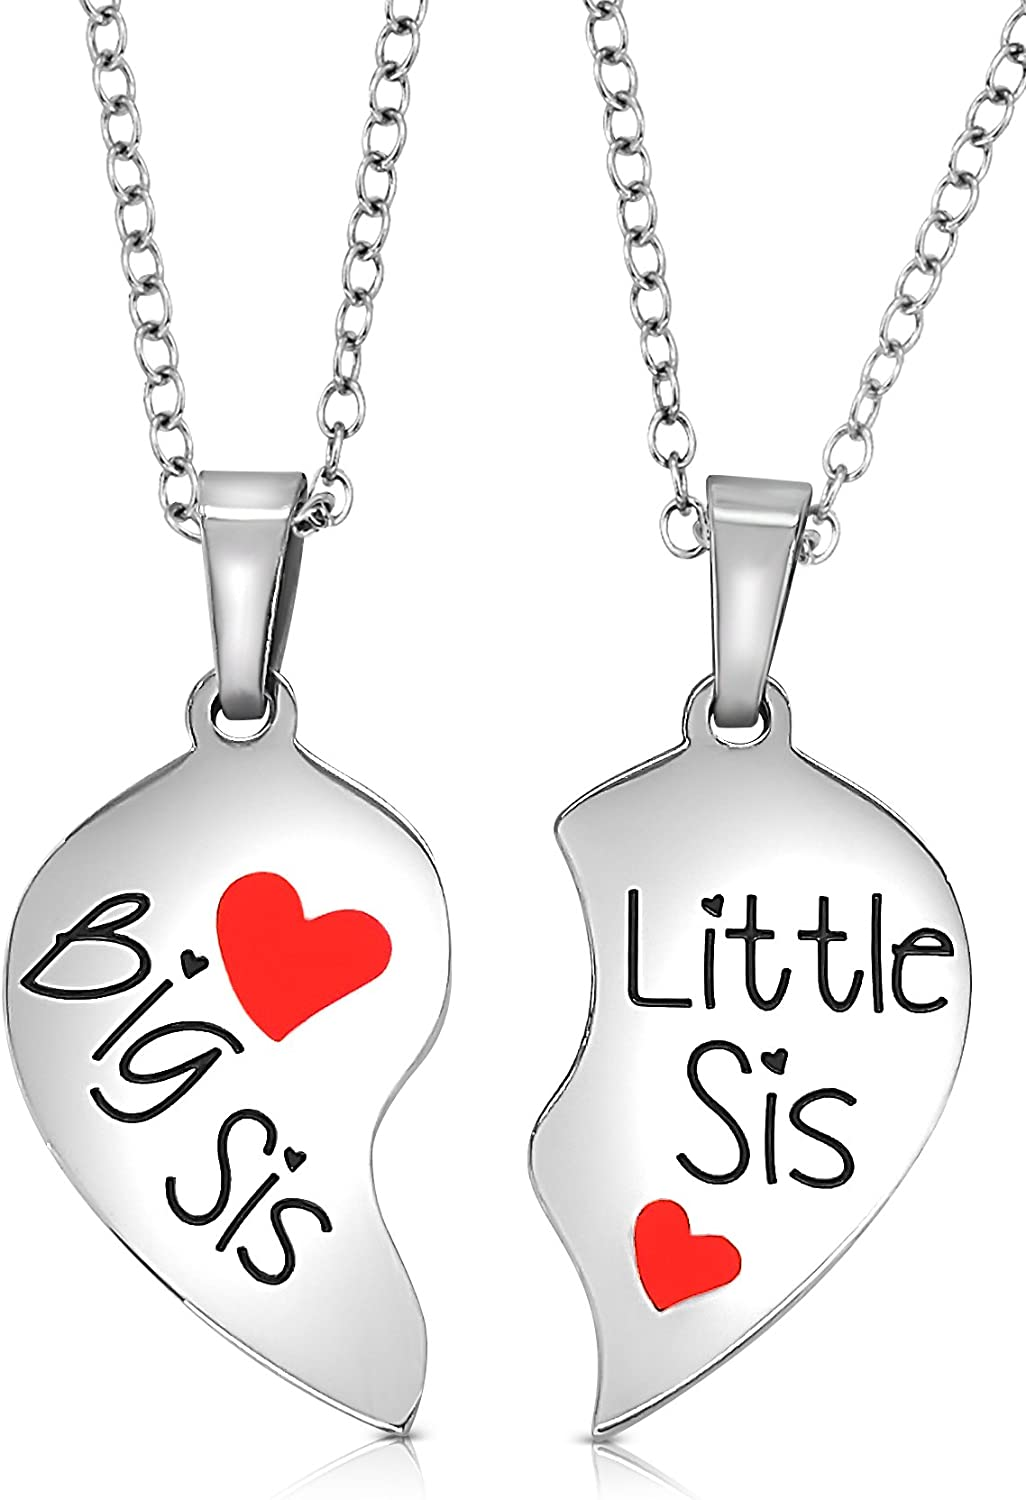 Sister Necklace Sterling Silver Rose Gold Plated Big Sis Lit Sis Love Heart Friendship Necklace Jewelry Gifts for Sister Classmates Girls